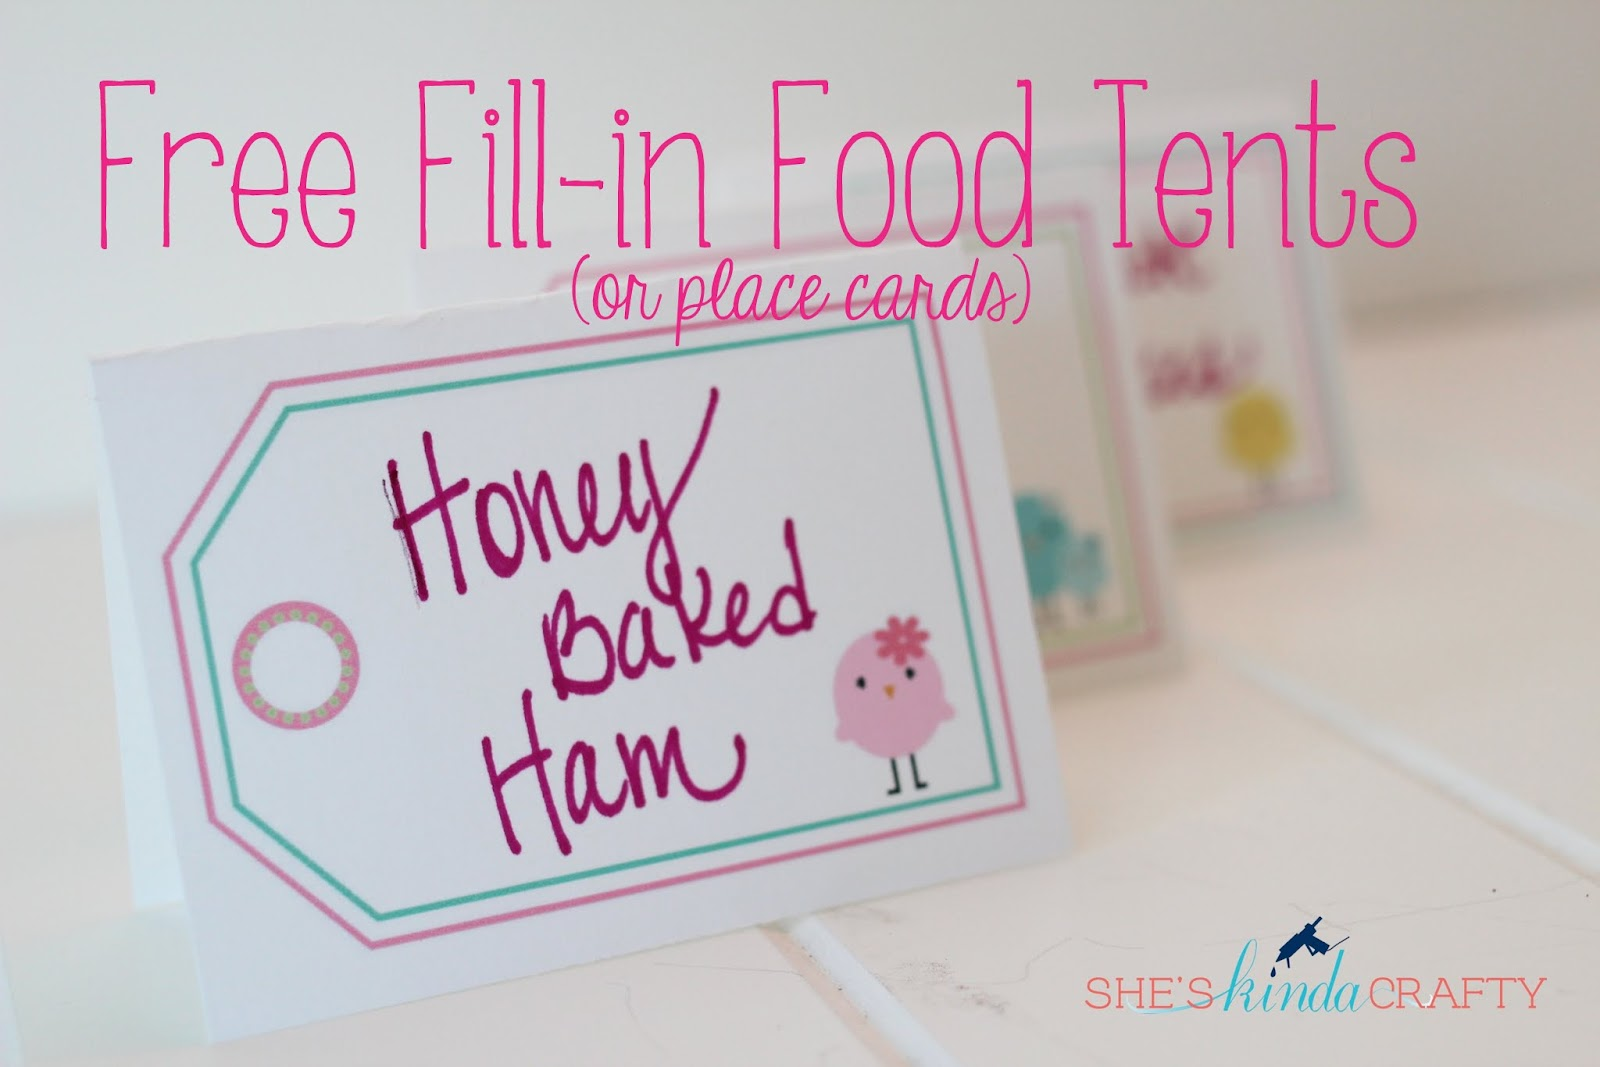 Table Tent Printable & Little Birdie Food Tents | Free Printable - Shes kinda Crafty